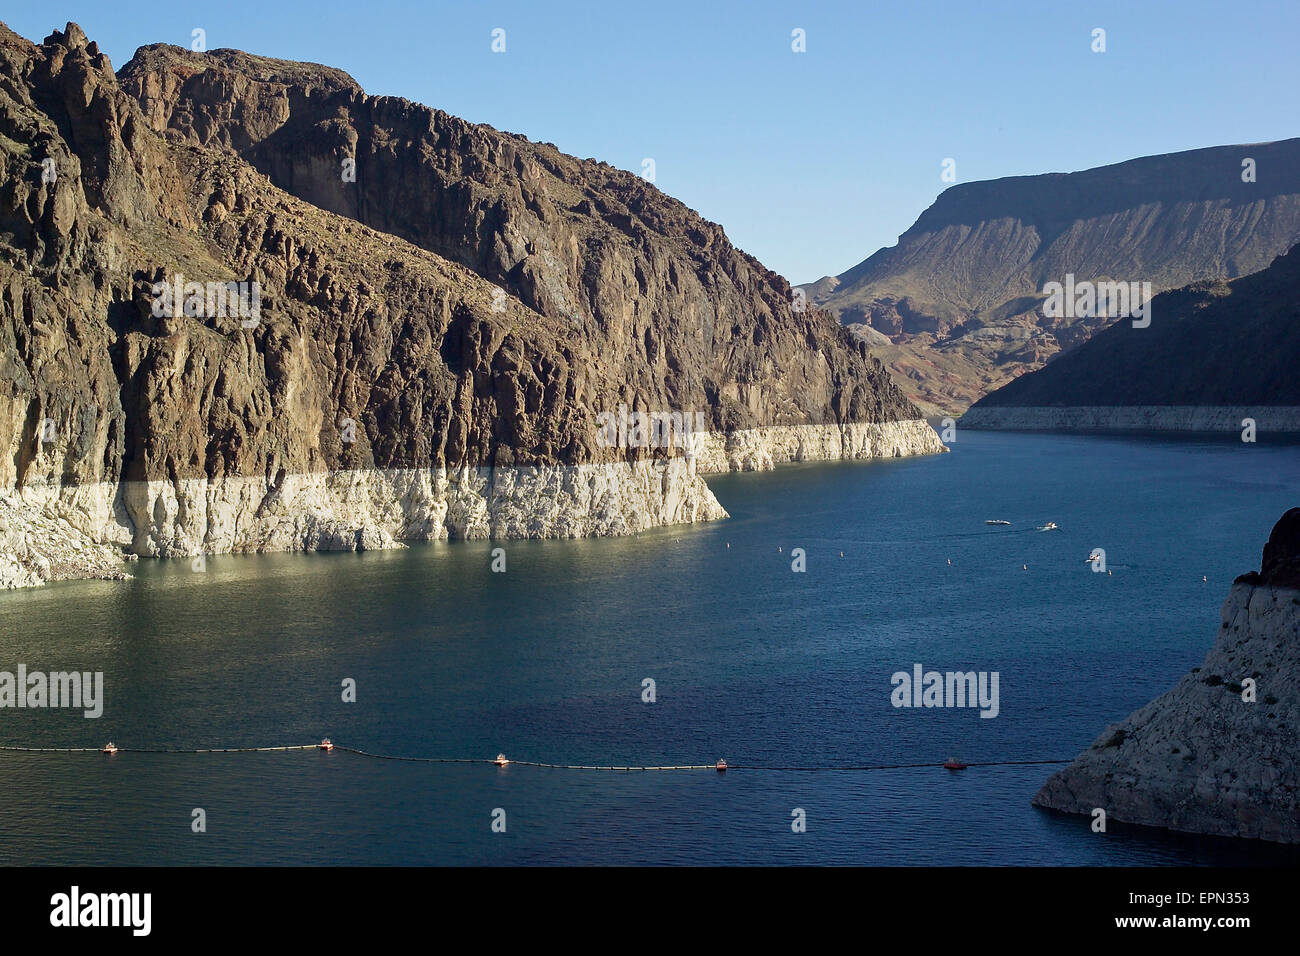 The ongoing drought in the western United States is evident by the lower water line seen on the rock walls that - Stock Image